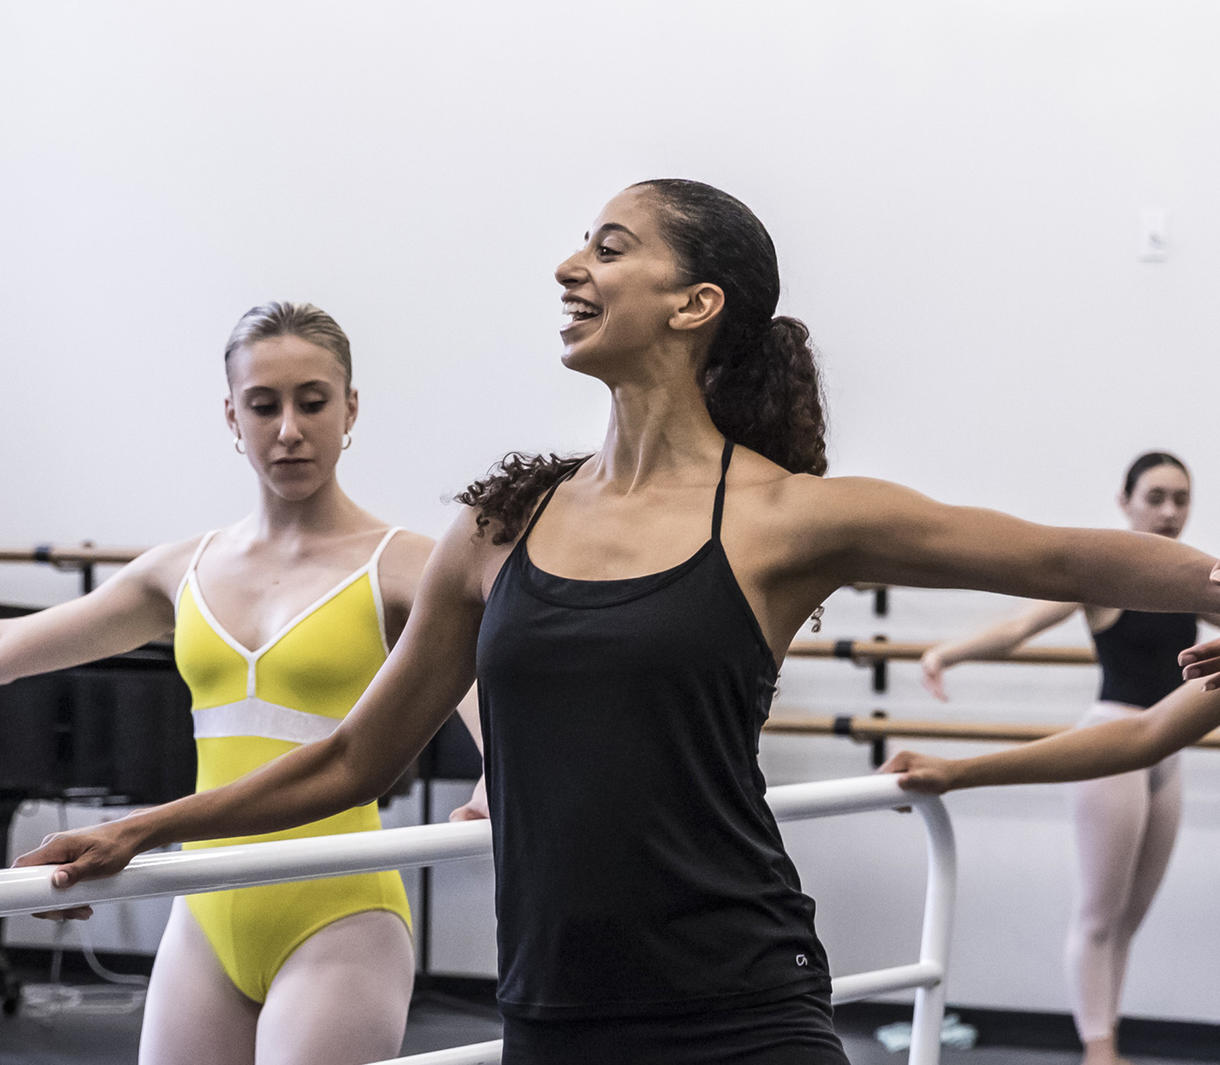 Alicia Graf mack, conversations on dance, the juilliard school, dance division, higher education, ballet program, juilliard, rebecca king ferraro, michael sean breeden, alivin ailey, complexions contemporary ballet, LINES ballet, dance class, dance education,